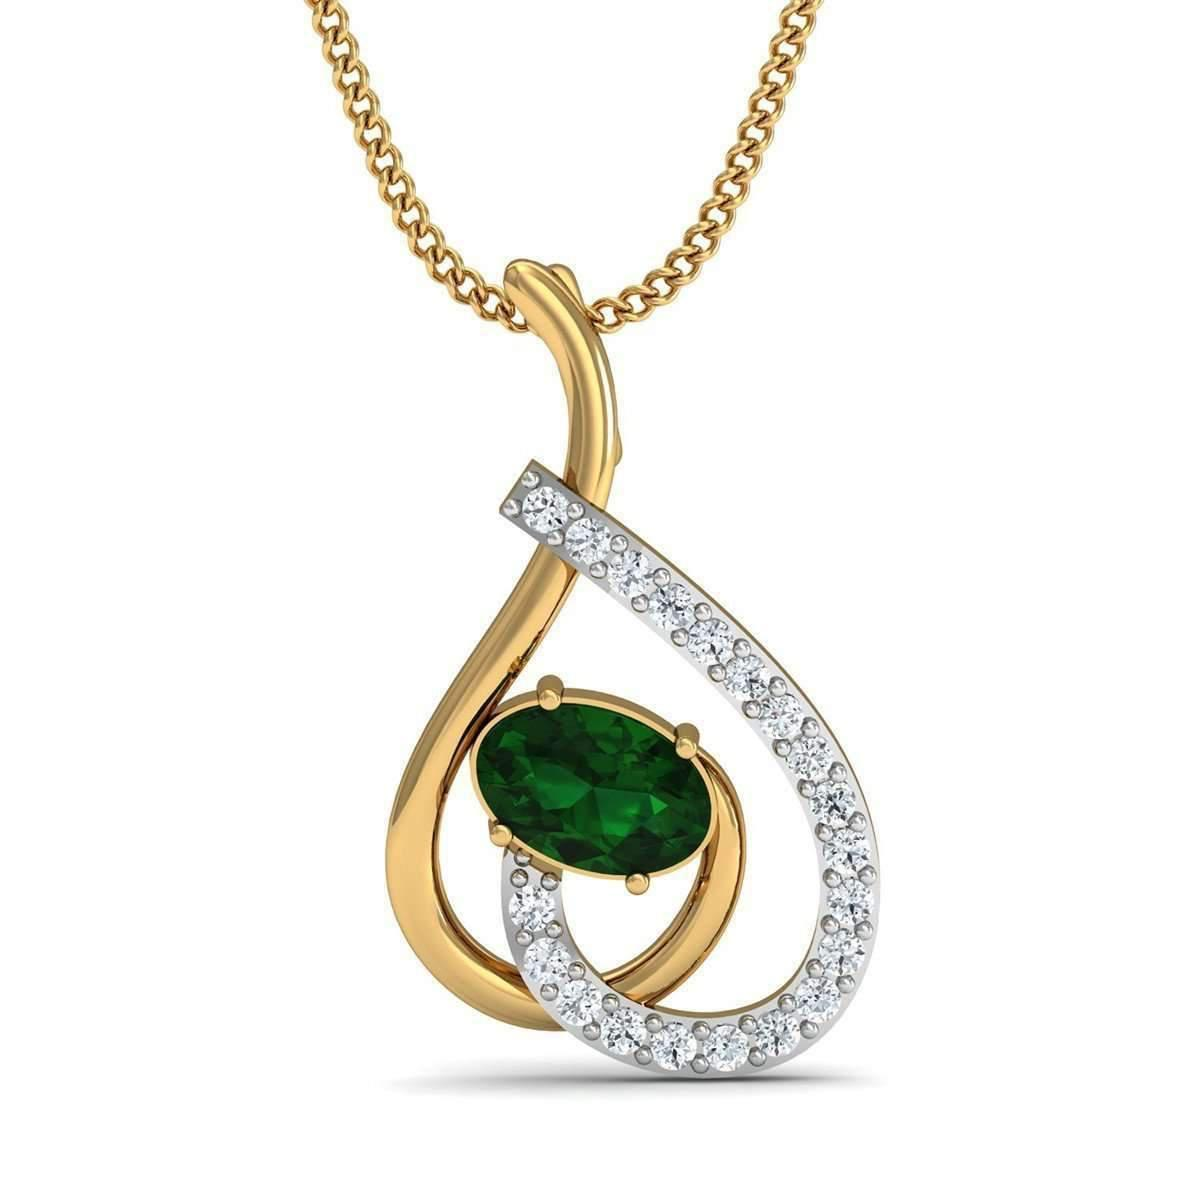 Diamoire Jewels Oval Shape Sapphire and Diamond Pendant in 14kt Yellow Gold Ps9xsPs